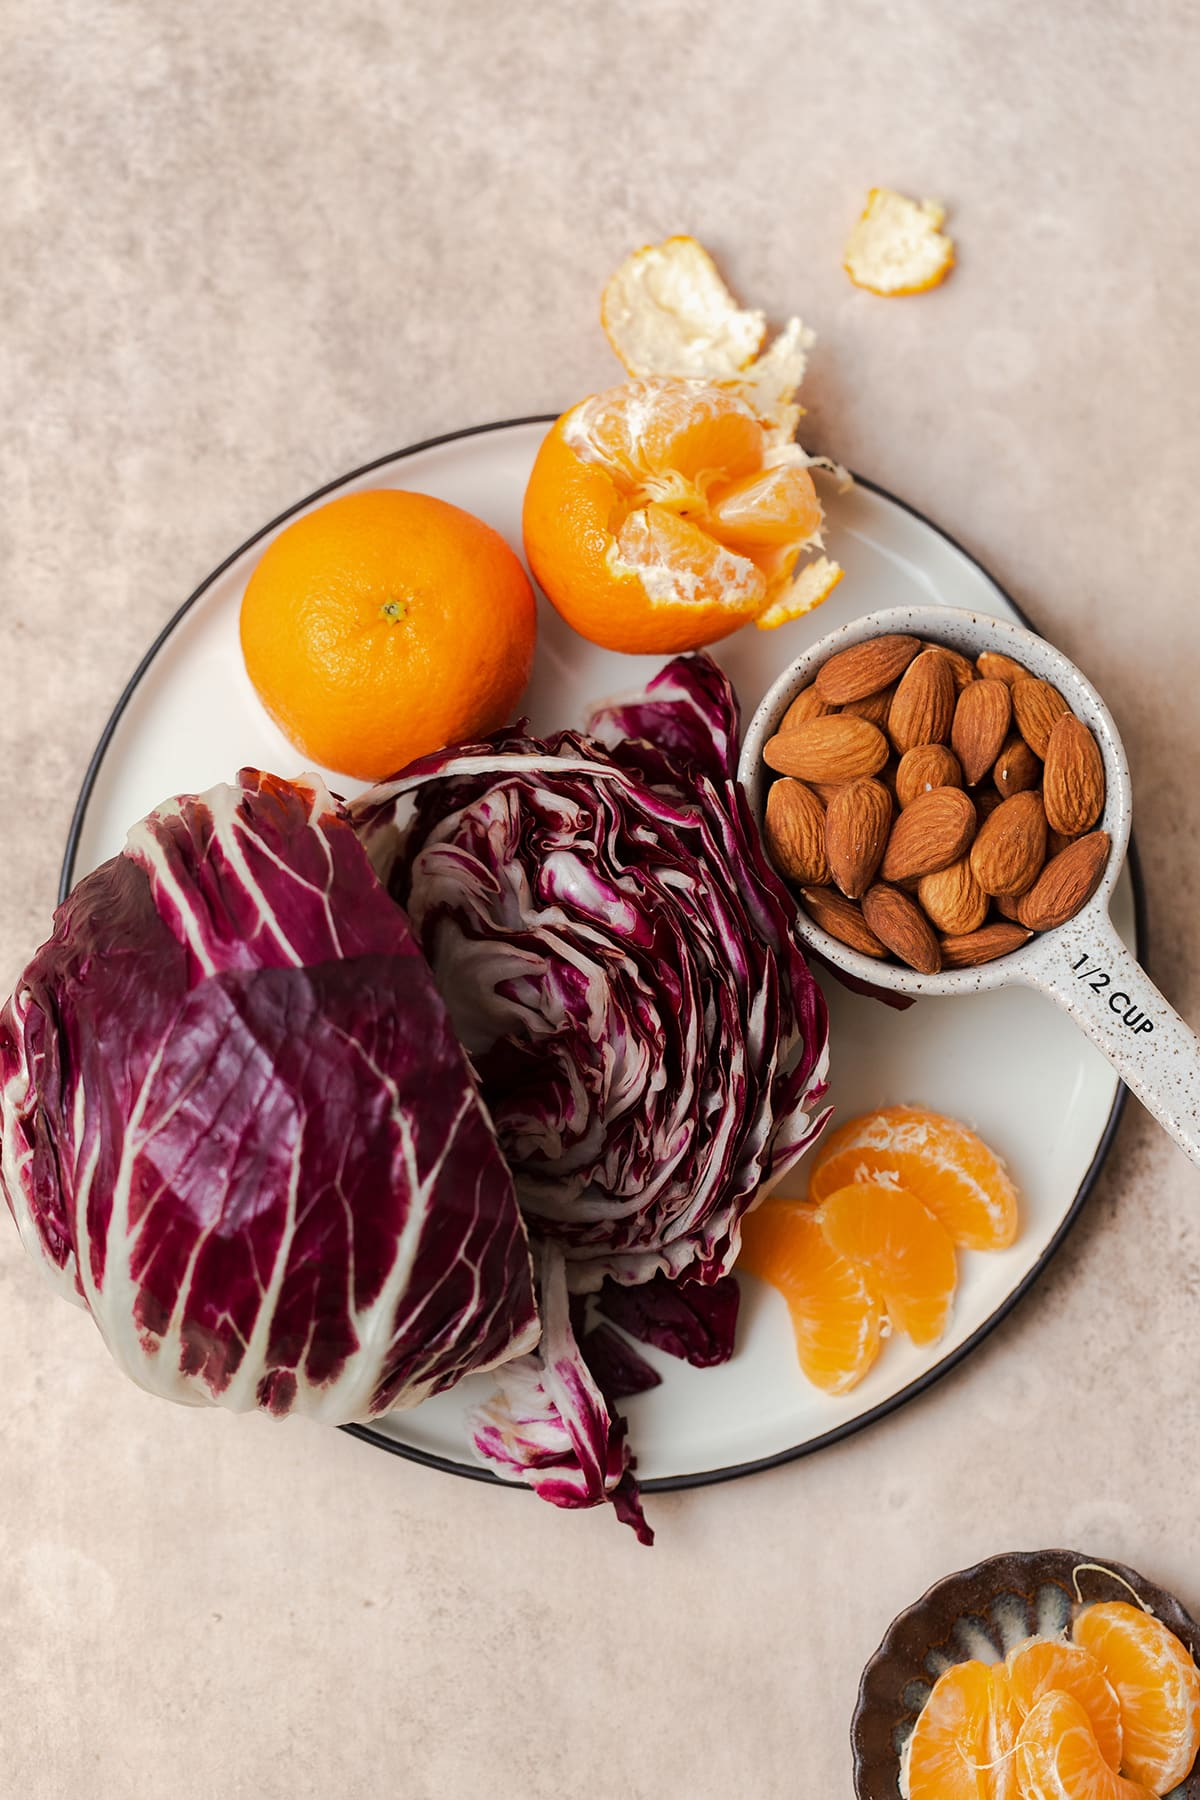 Ingredients for the clementine salad laid out on a plate. Whole clementines, whole almonds, and a whole head of radicchio.